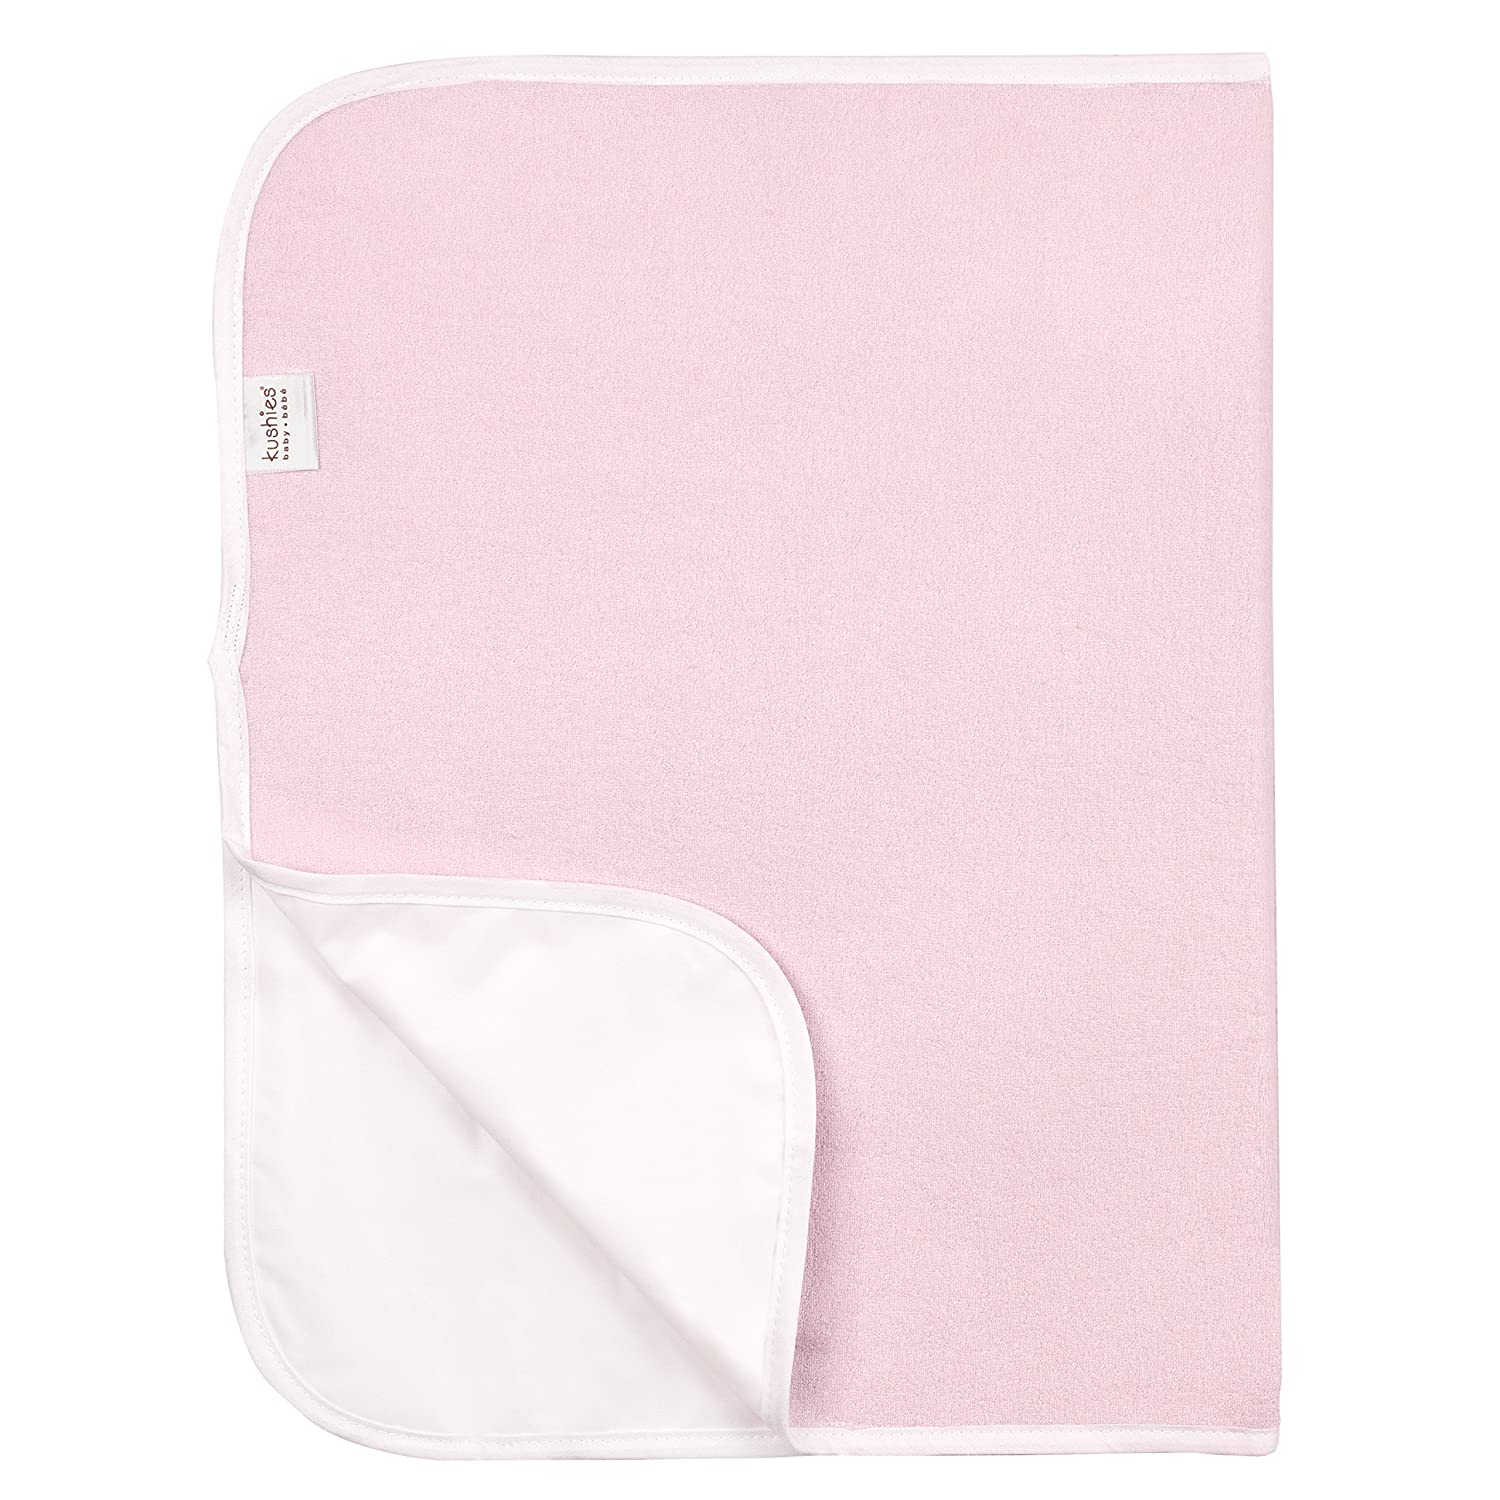 Kushies Deluxe Change Pad Terry, Pink Solid P215PNK